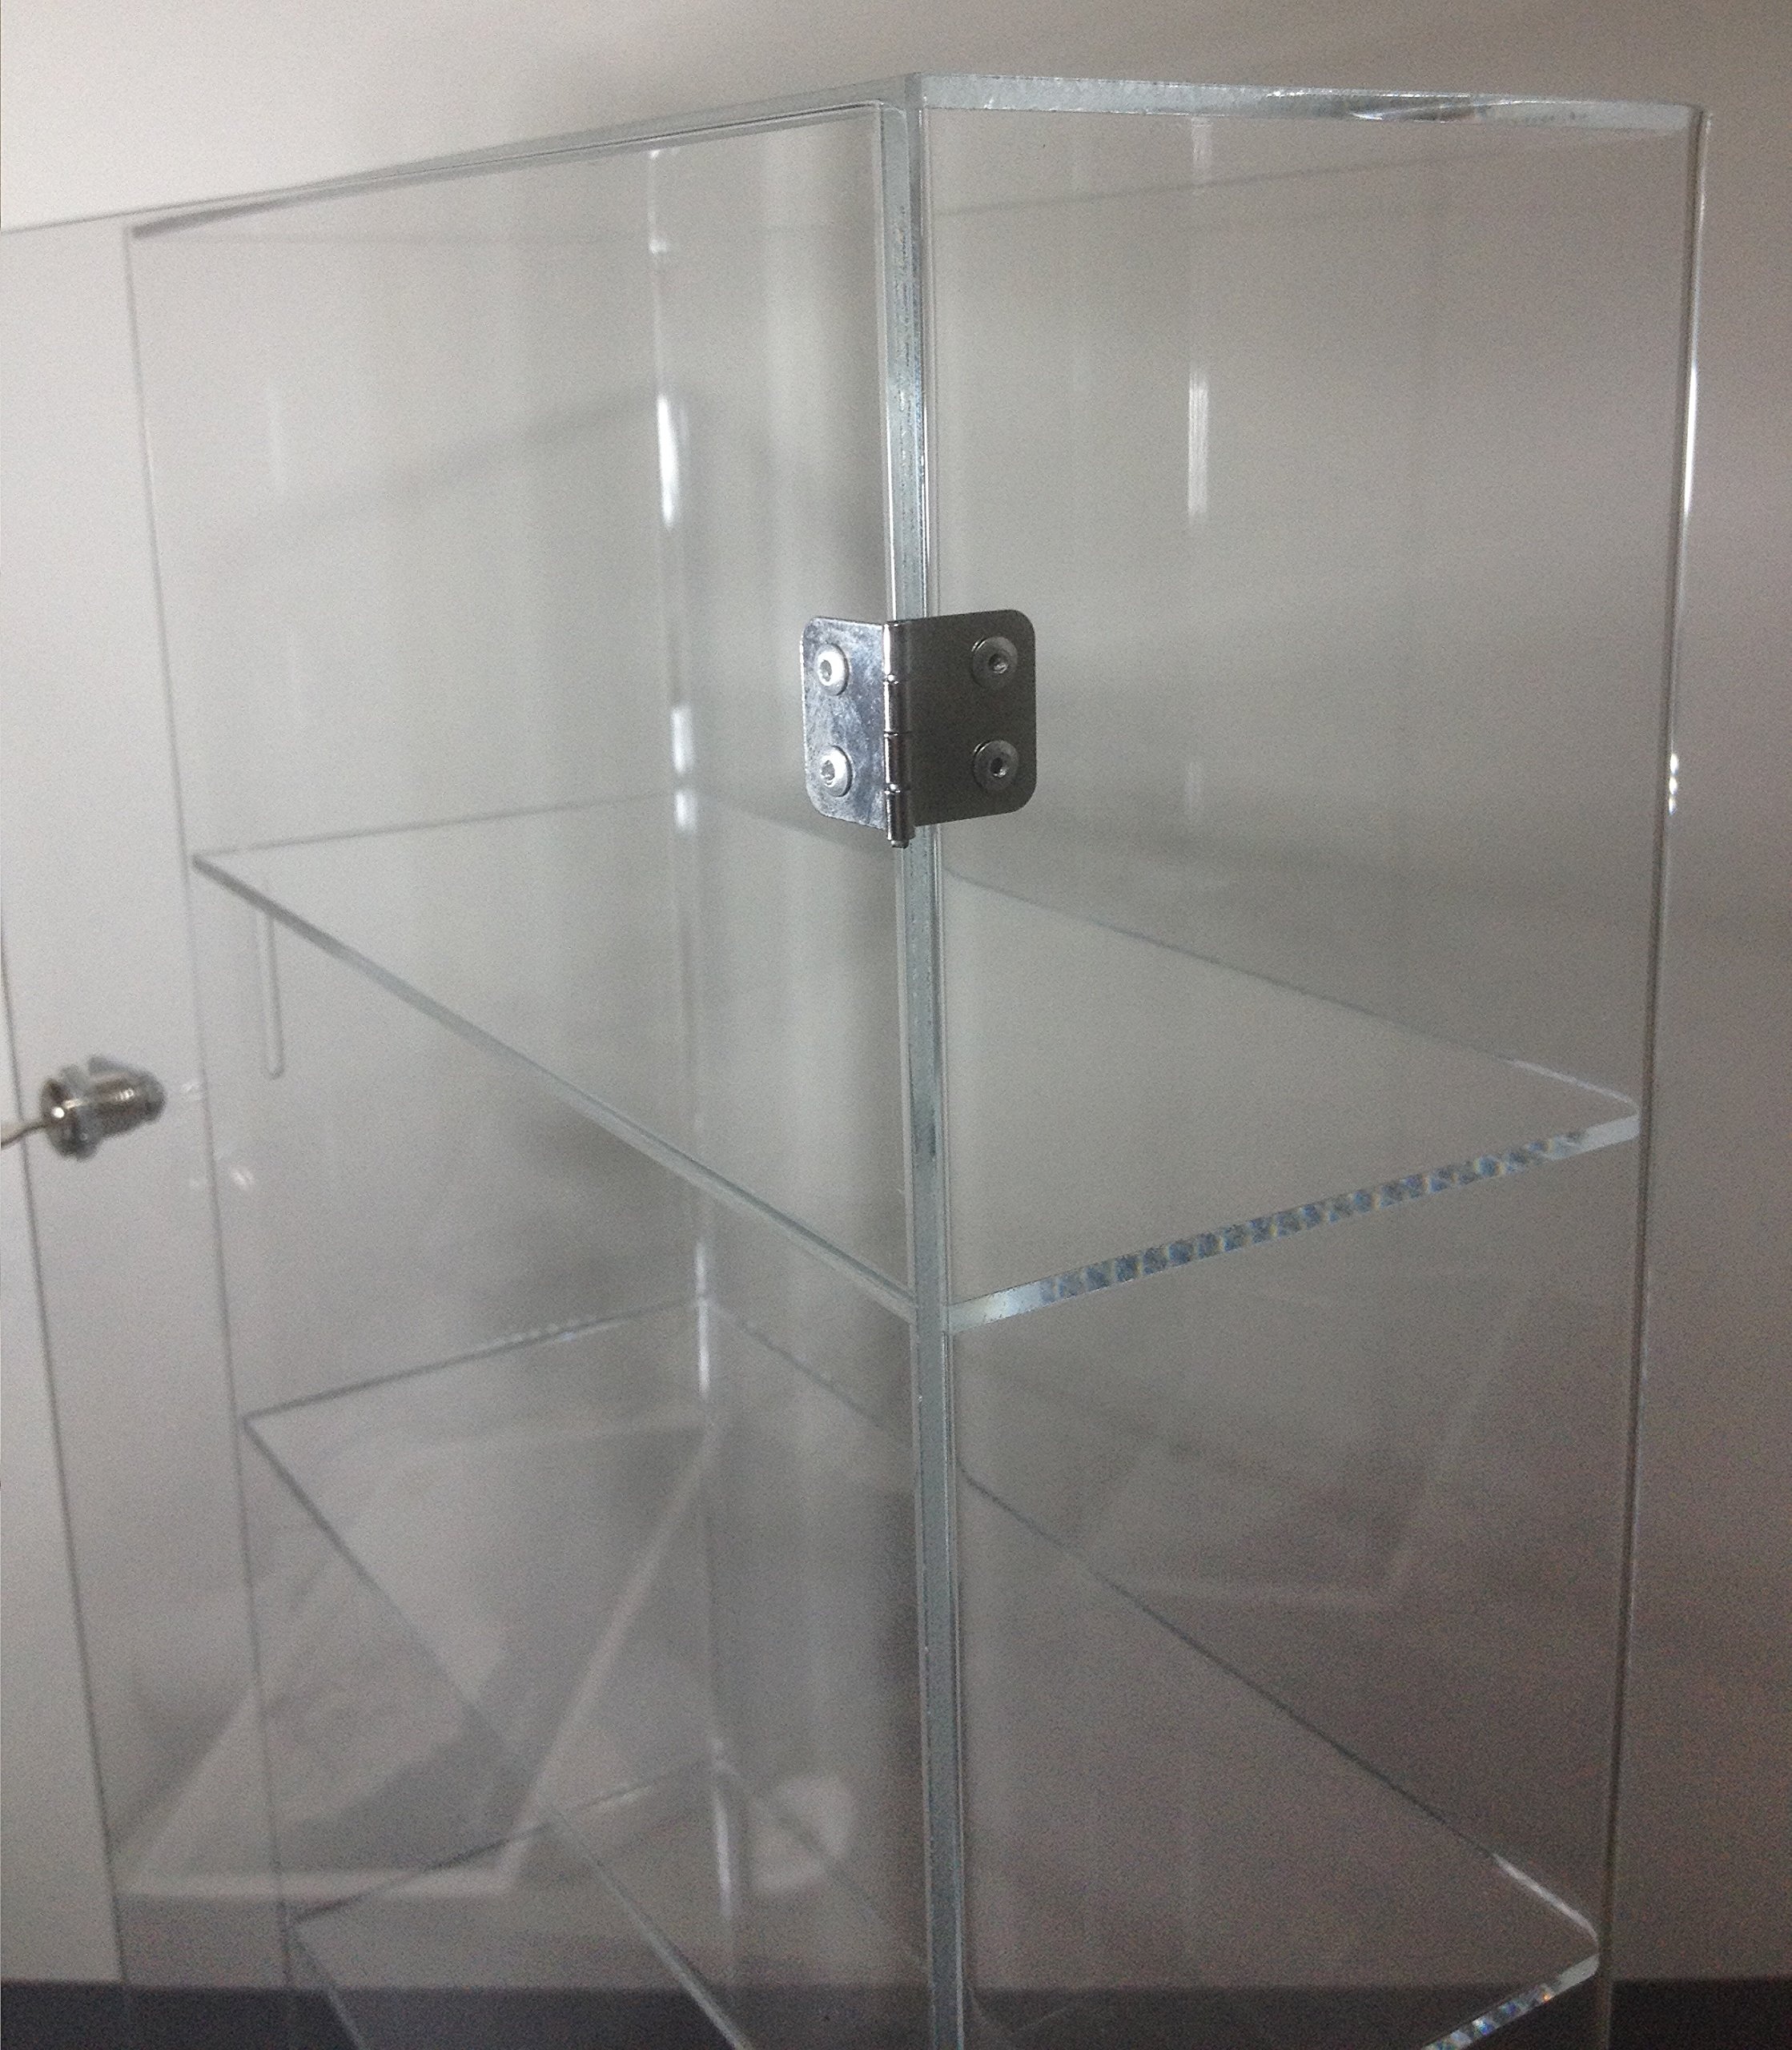 T'z Tagz Brand Acrylic Lucite Showcase Jewelry Pastry Bakery Counter Display W/Door & Lock (10'' X 4'' X 18.25''h)